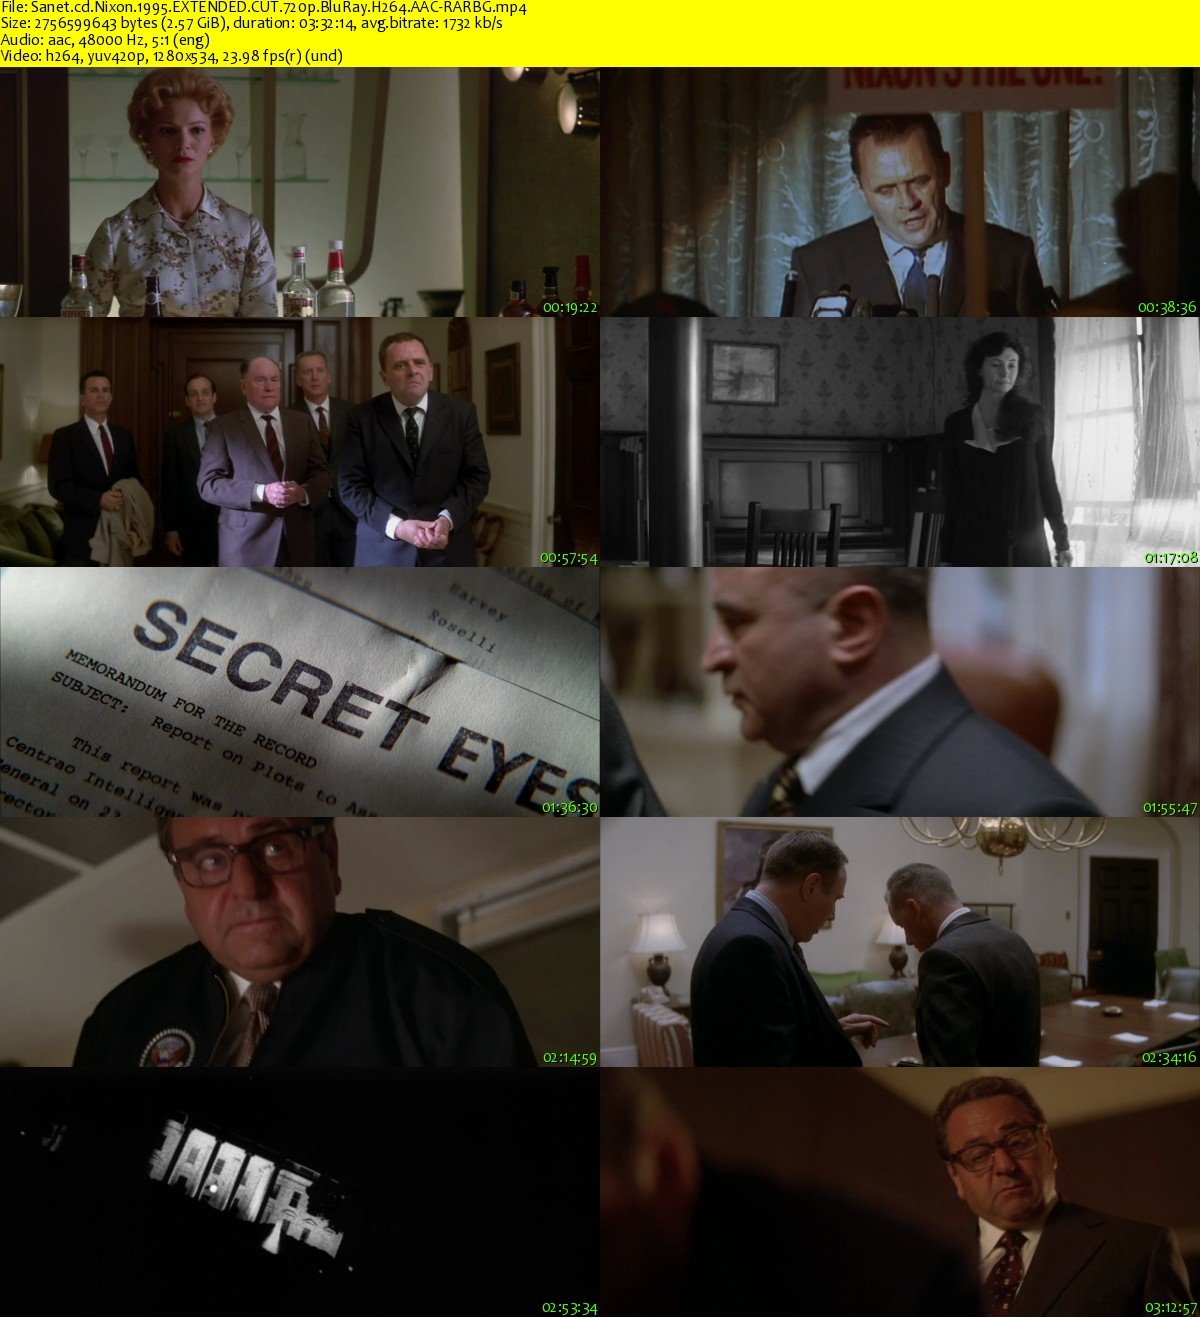 download nixon 1995 extended cut 720p bluray h264 aac